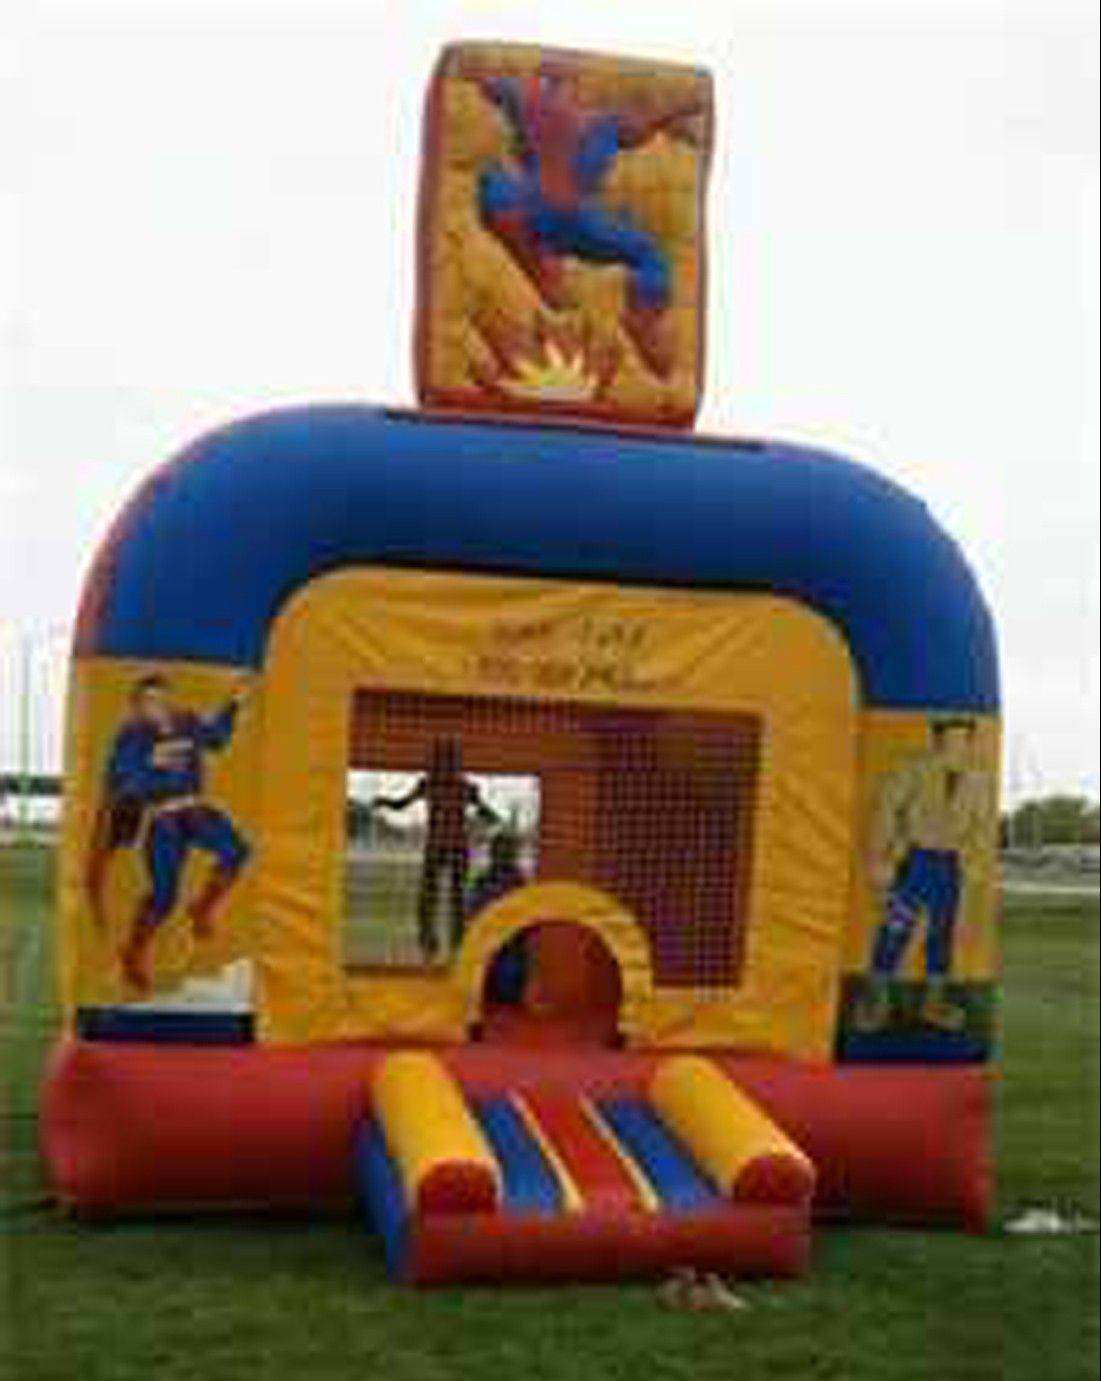 Inflatable jumping castles are all the rage for many party guests. These are specifically popular among the tweener crowd and younger.